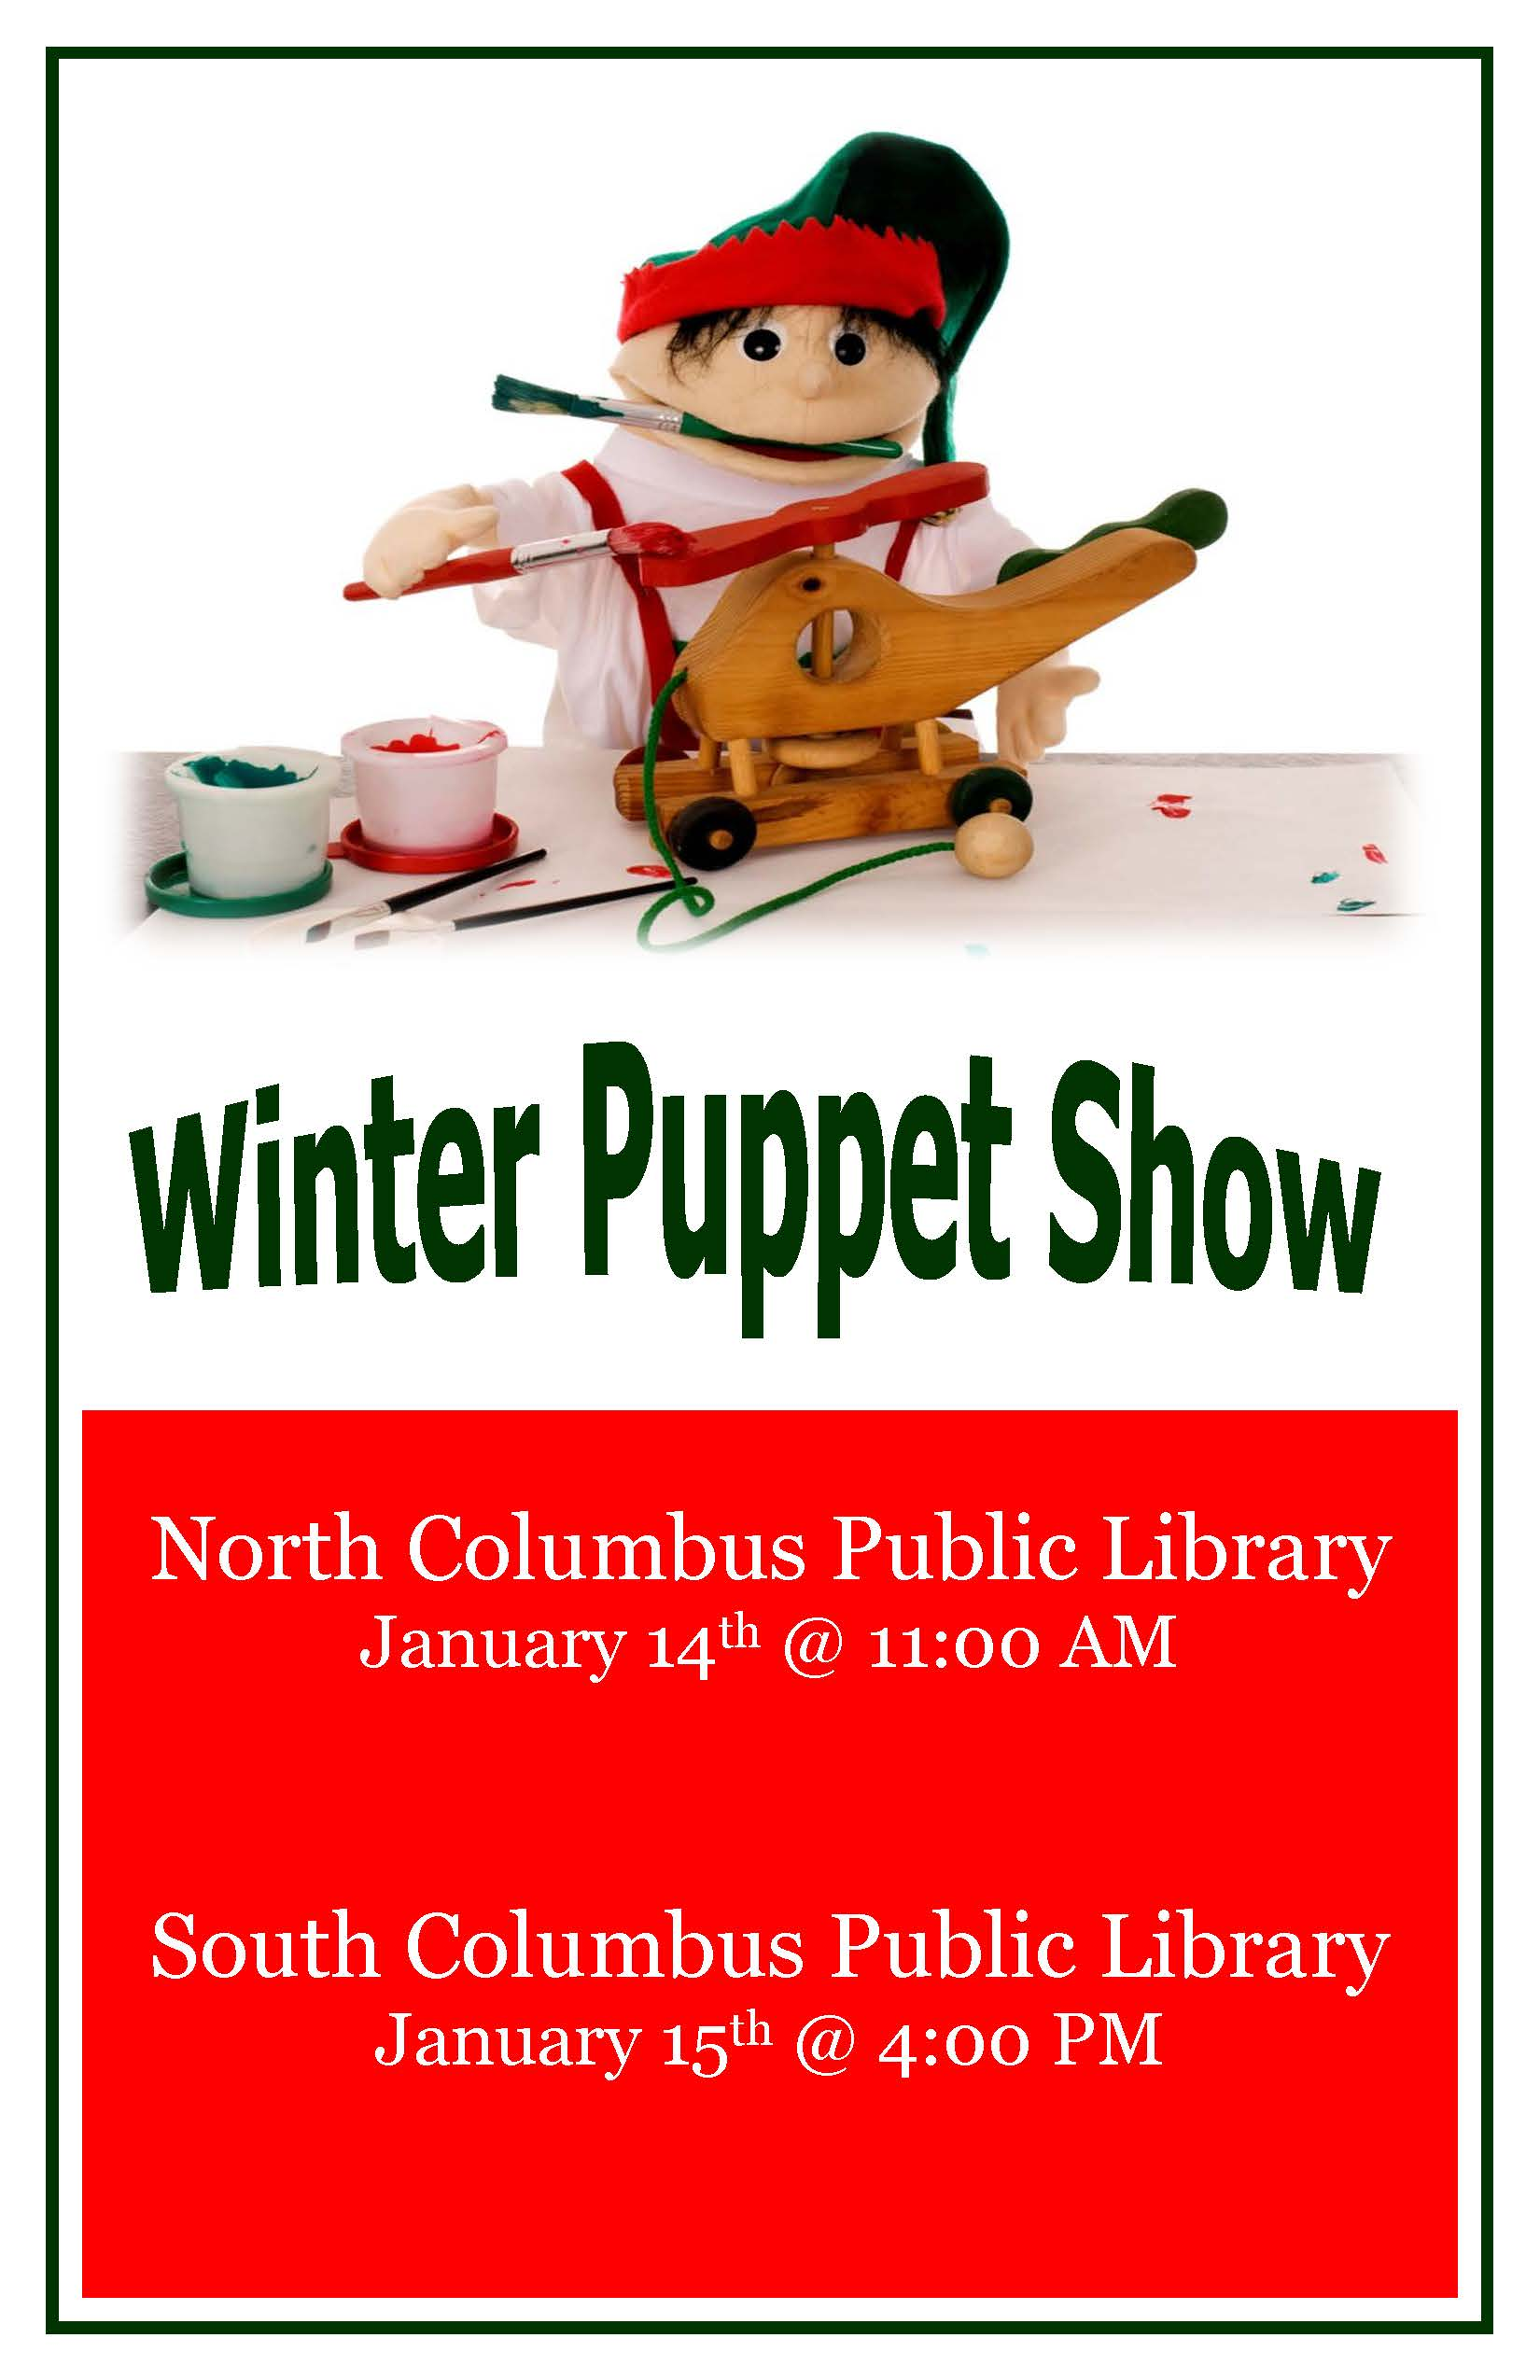 Winter Puppet Shows at the Libraries